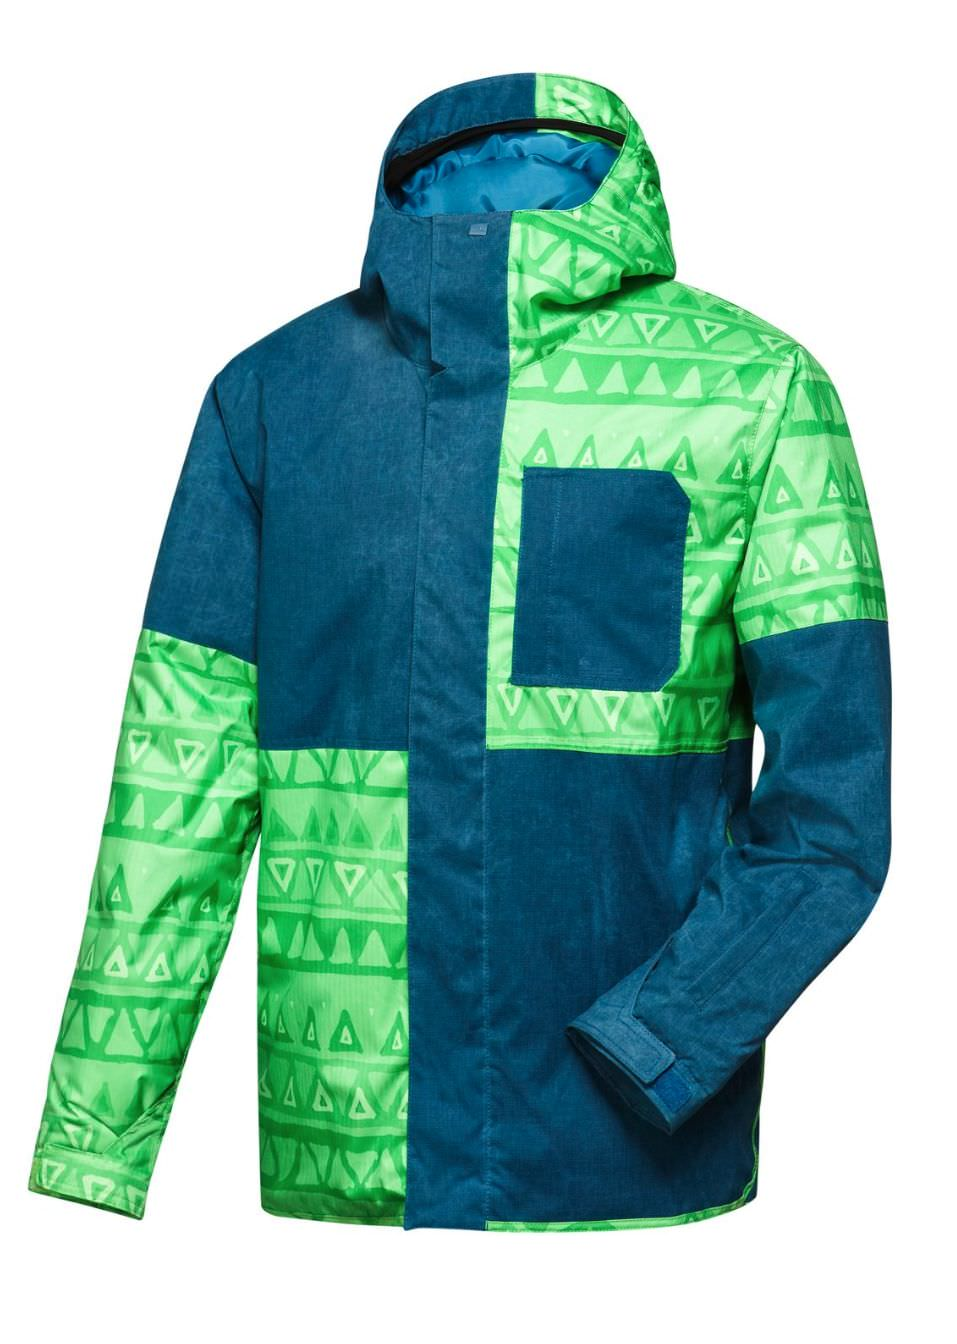 QUIKSILVER GIACCA SNOW REYN - LM BOARD STORE